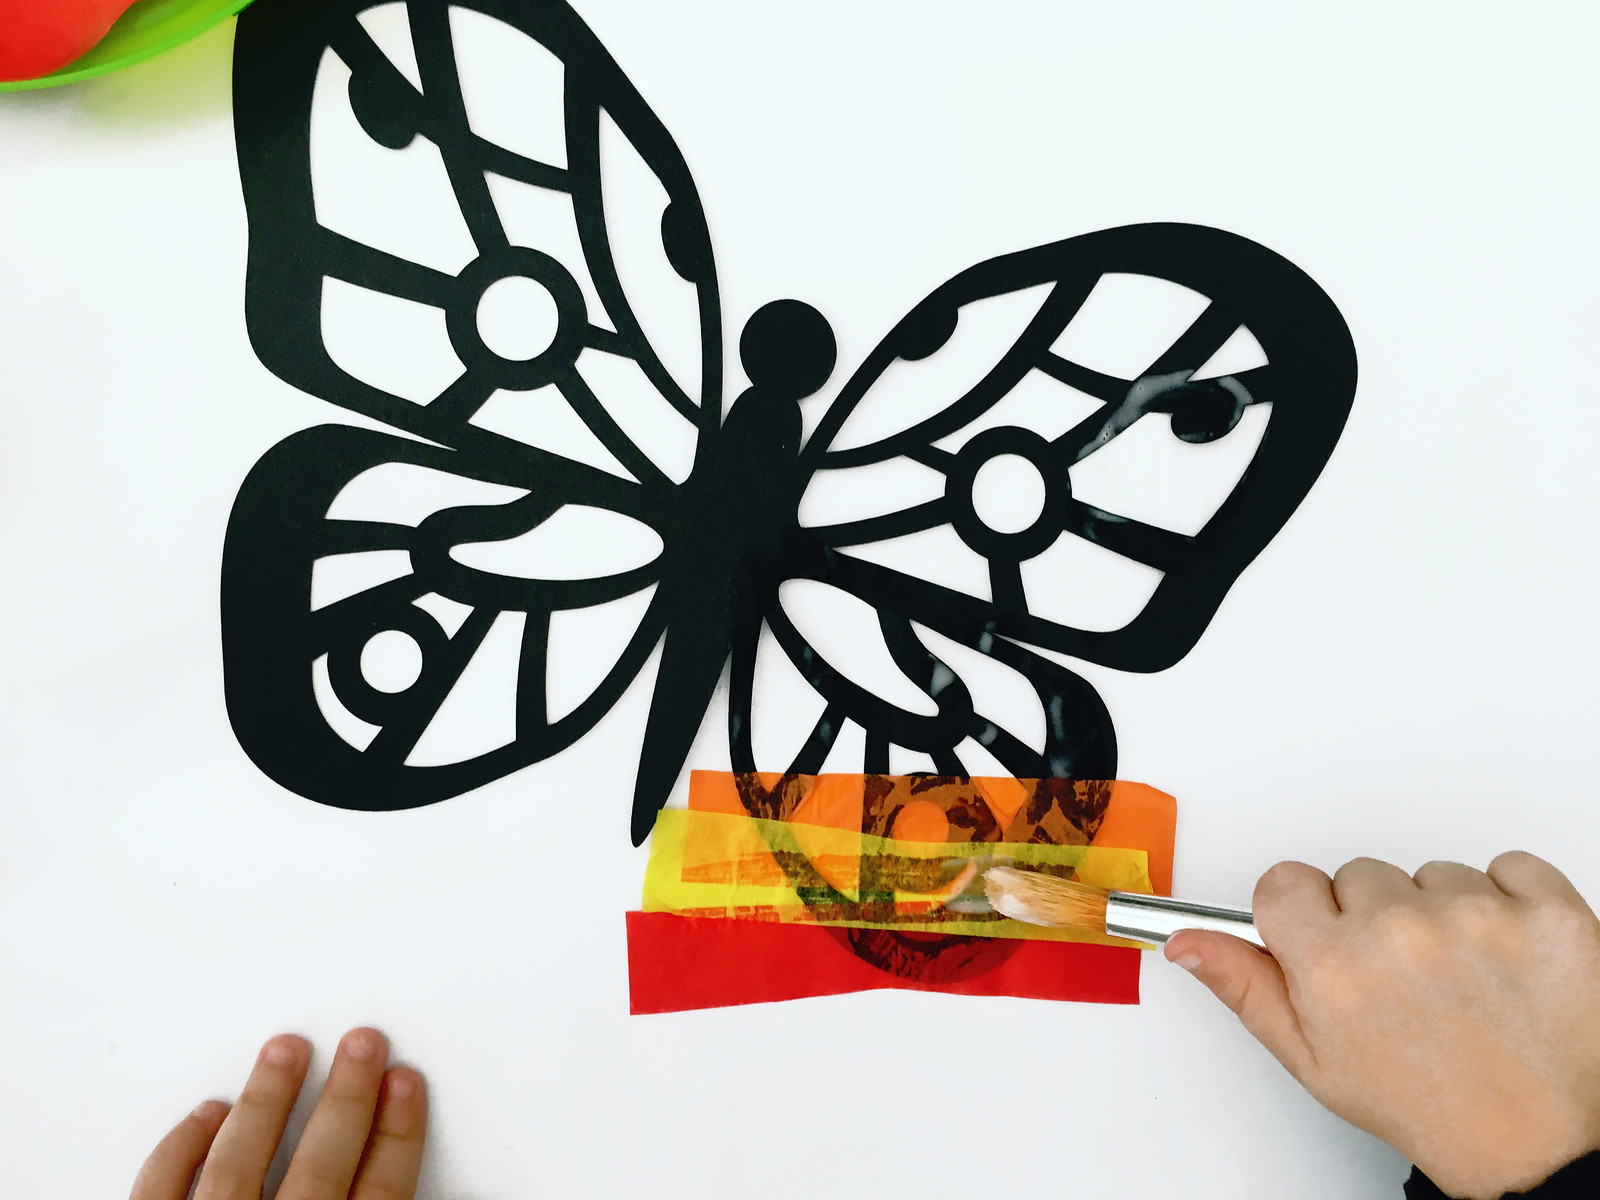 toddler's hand applying glue to paper butterfly cut out